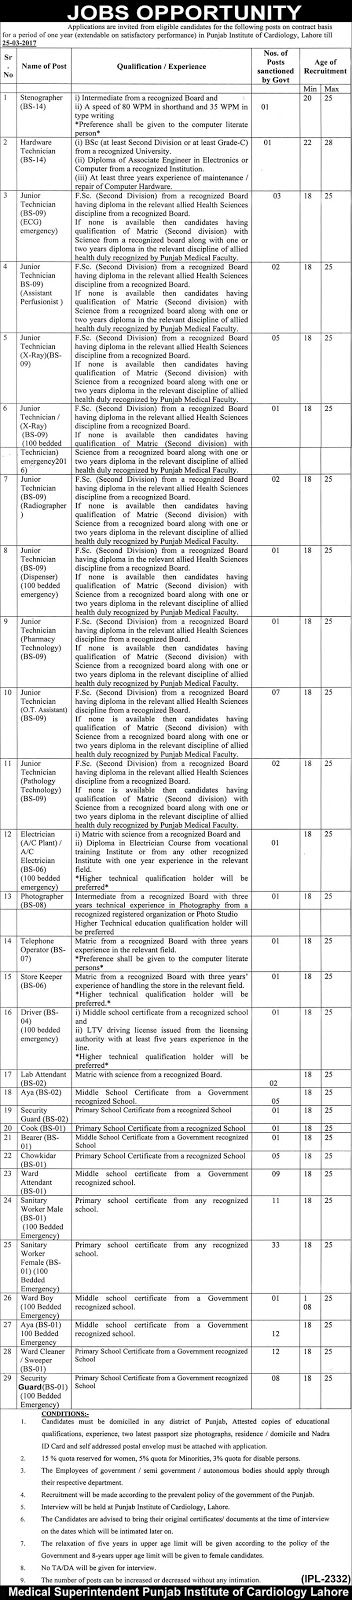 Punjab Institute of Cardiology Lahore 65+ Jobs 2017